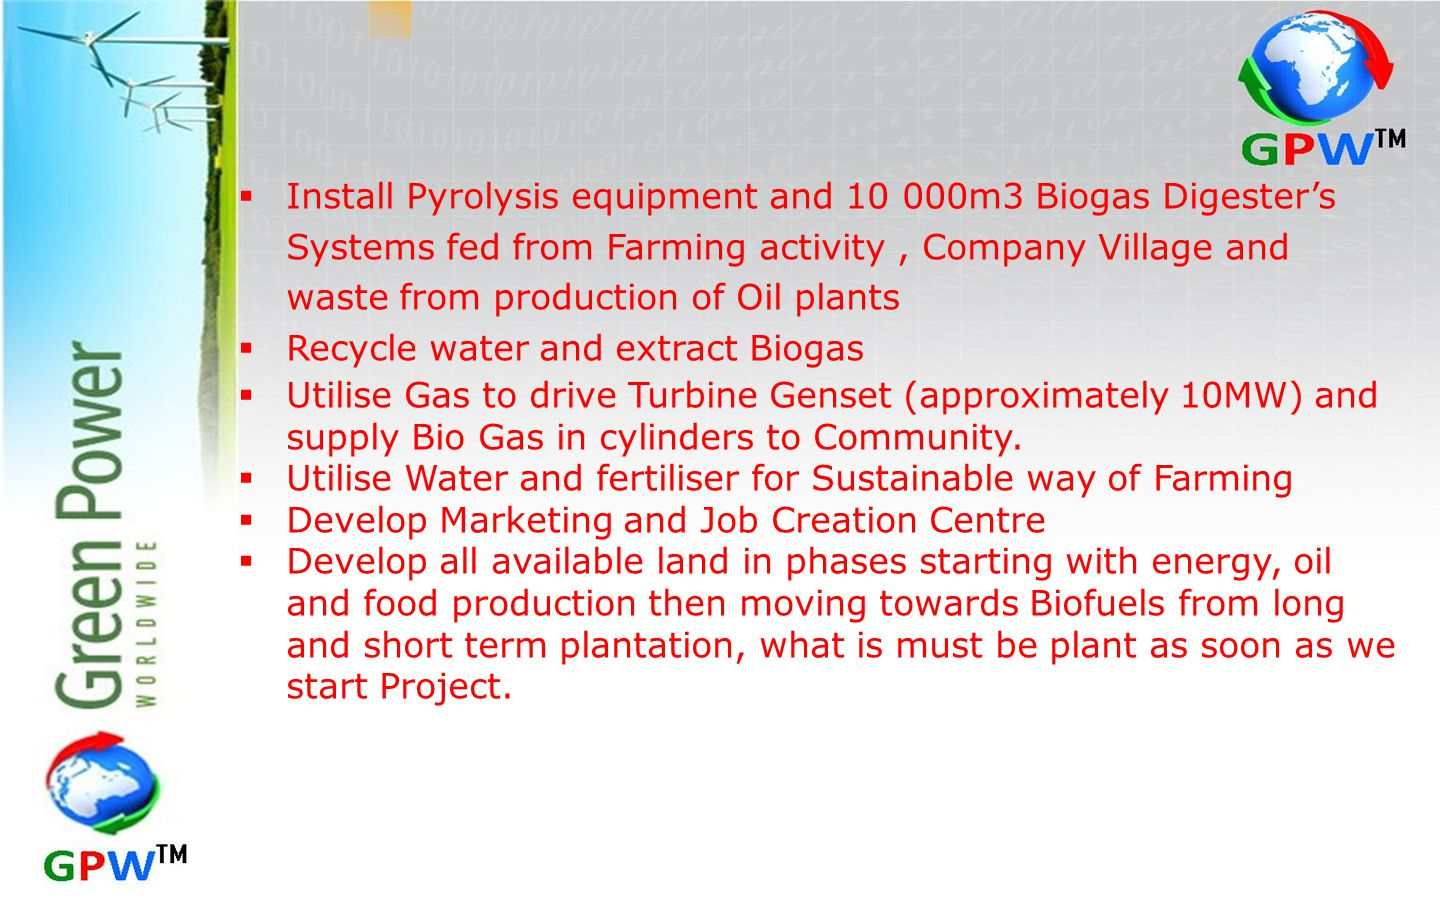 Install Pyrolysis equipment and 10 000m3 Biogas Digester's Systems fed from Farming activity , Company Village and waste from production of Oil plants